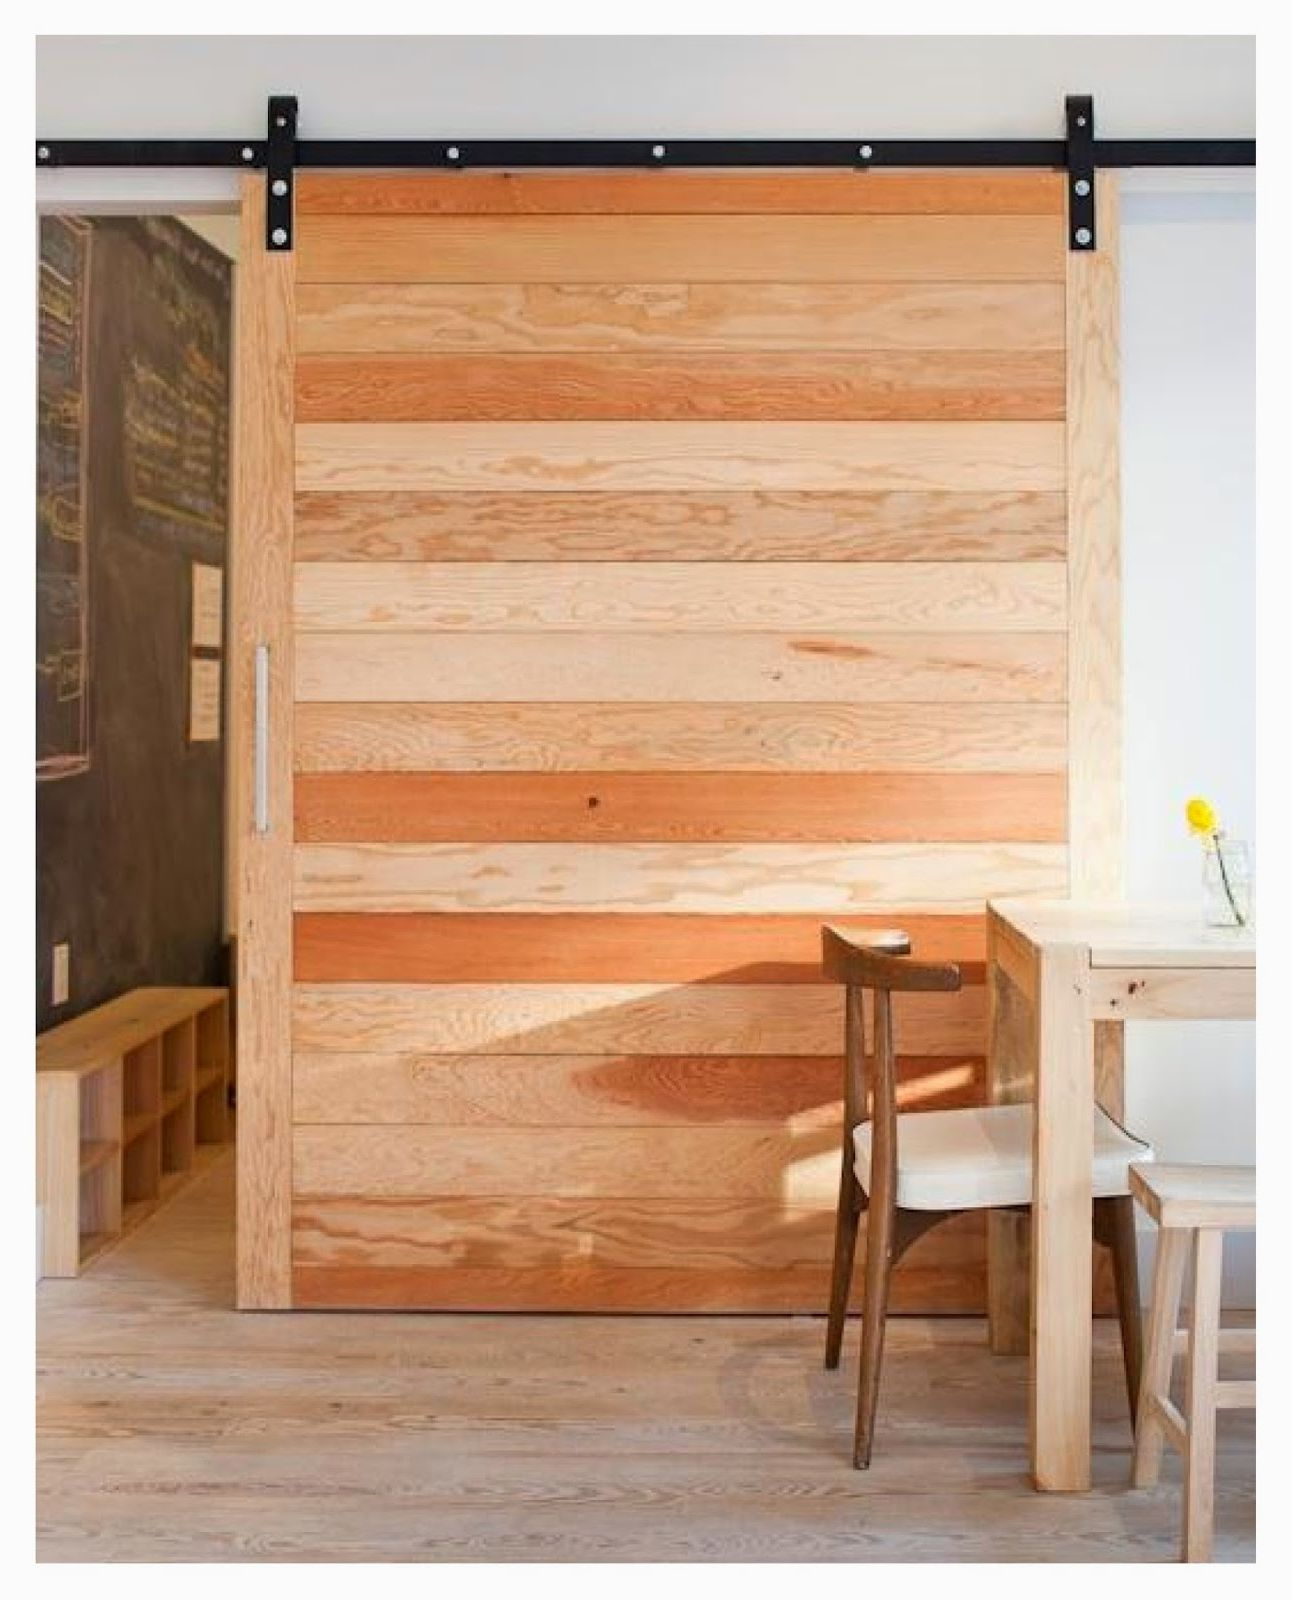 Rustic wooden sliding door